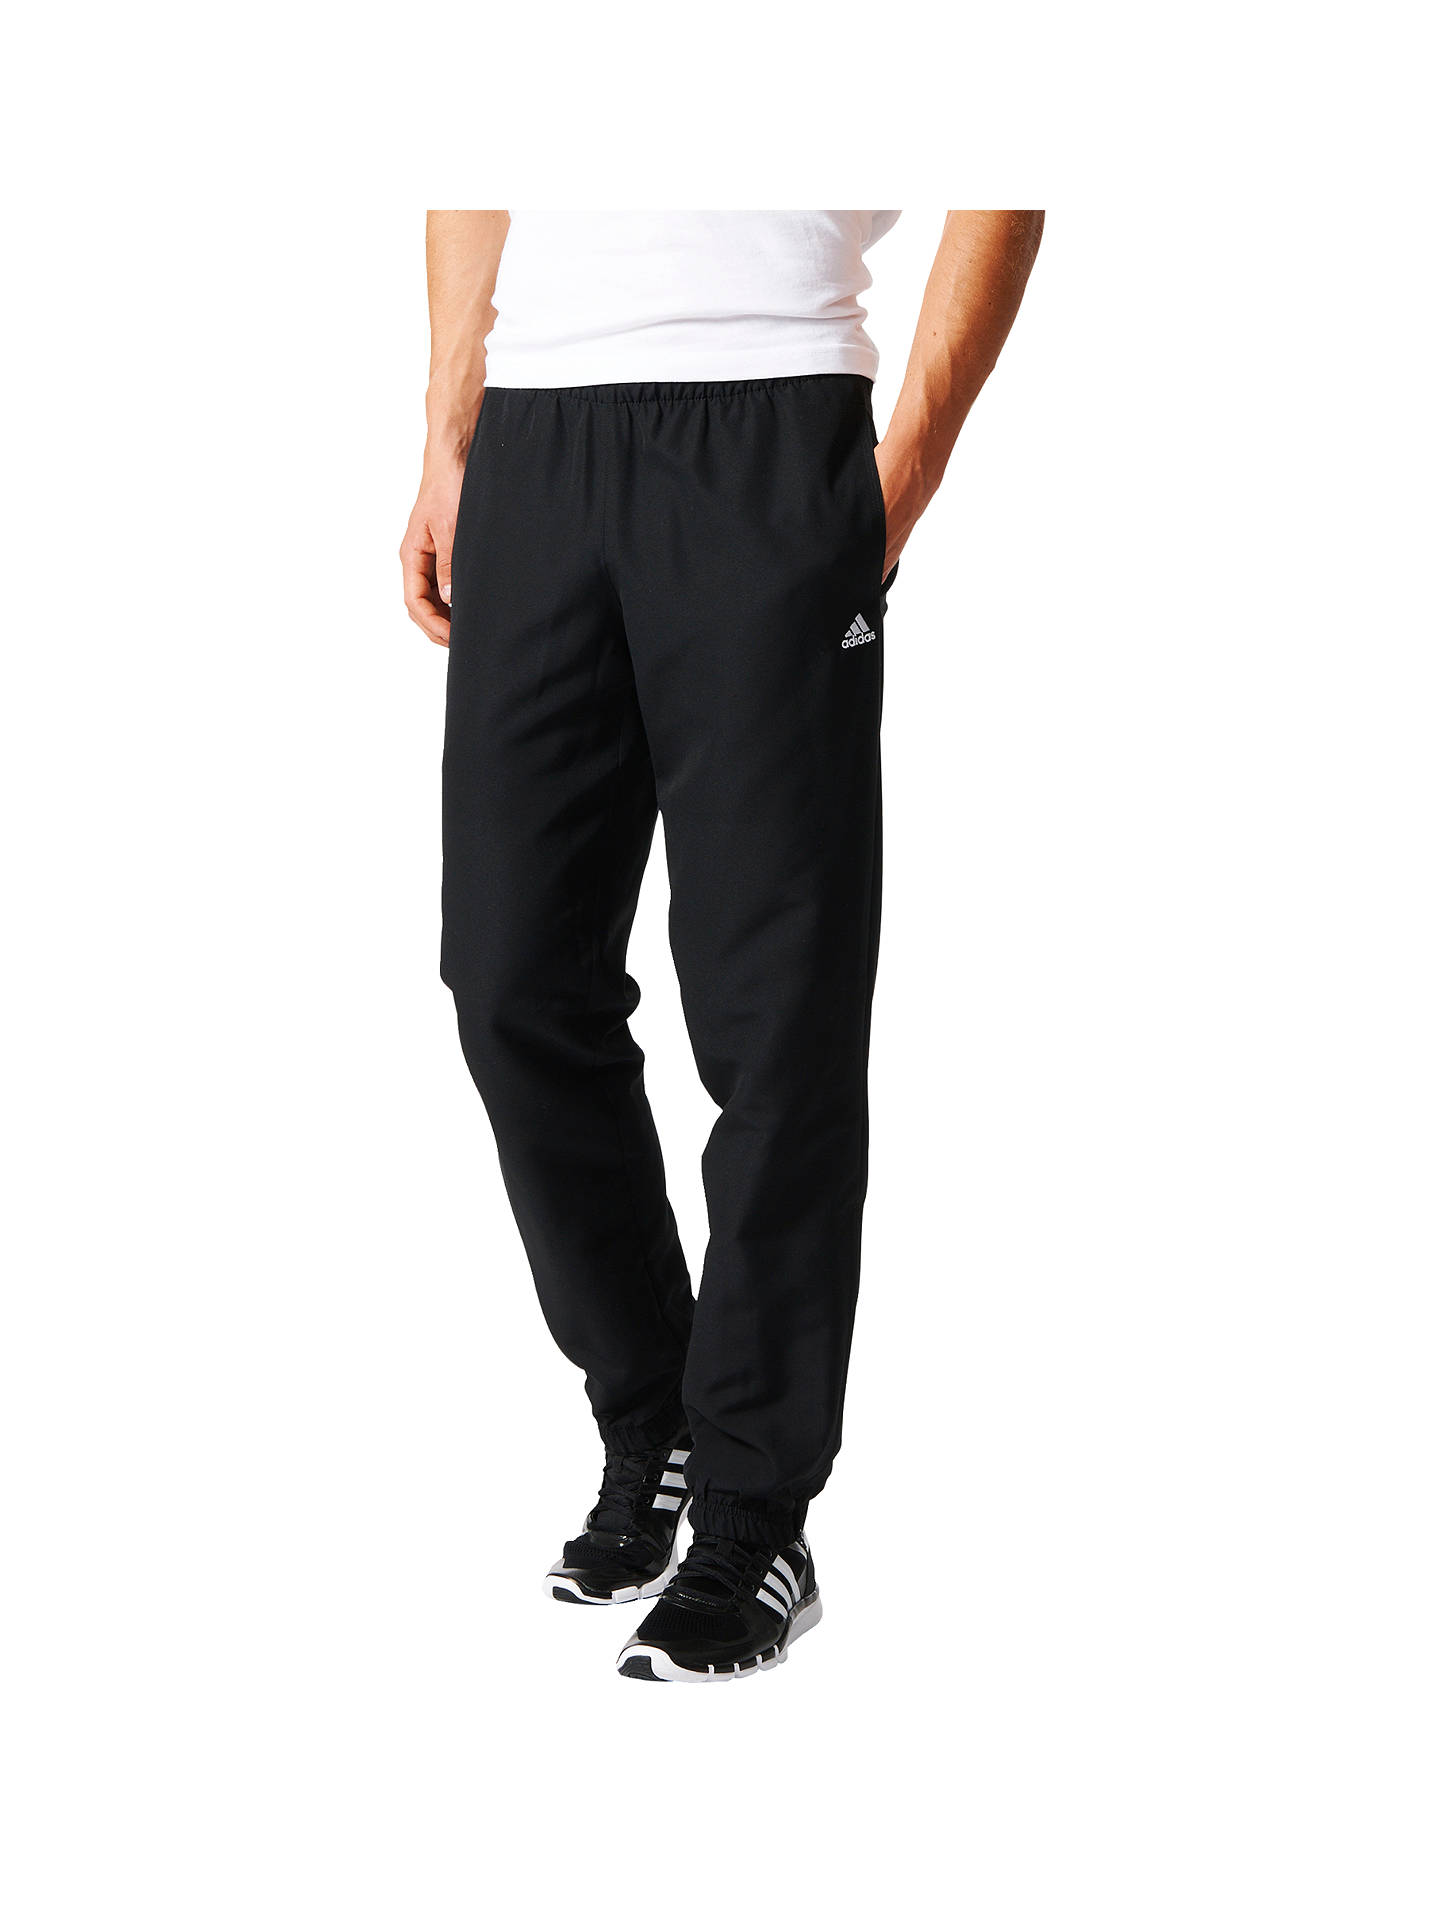 c965a169b adidas Sports Essentials Standford Tracksuit Bottoms at John Lewis ...